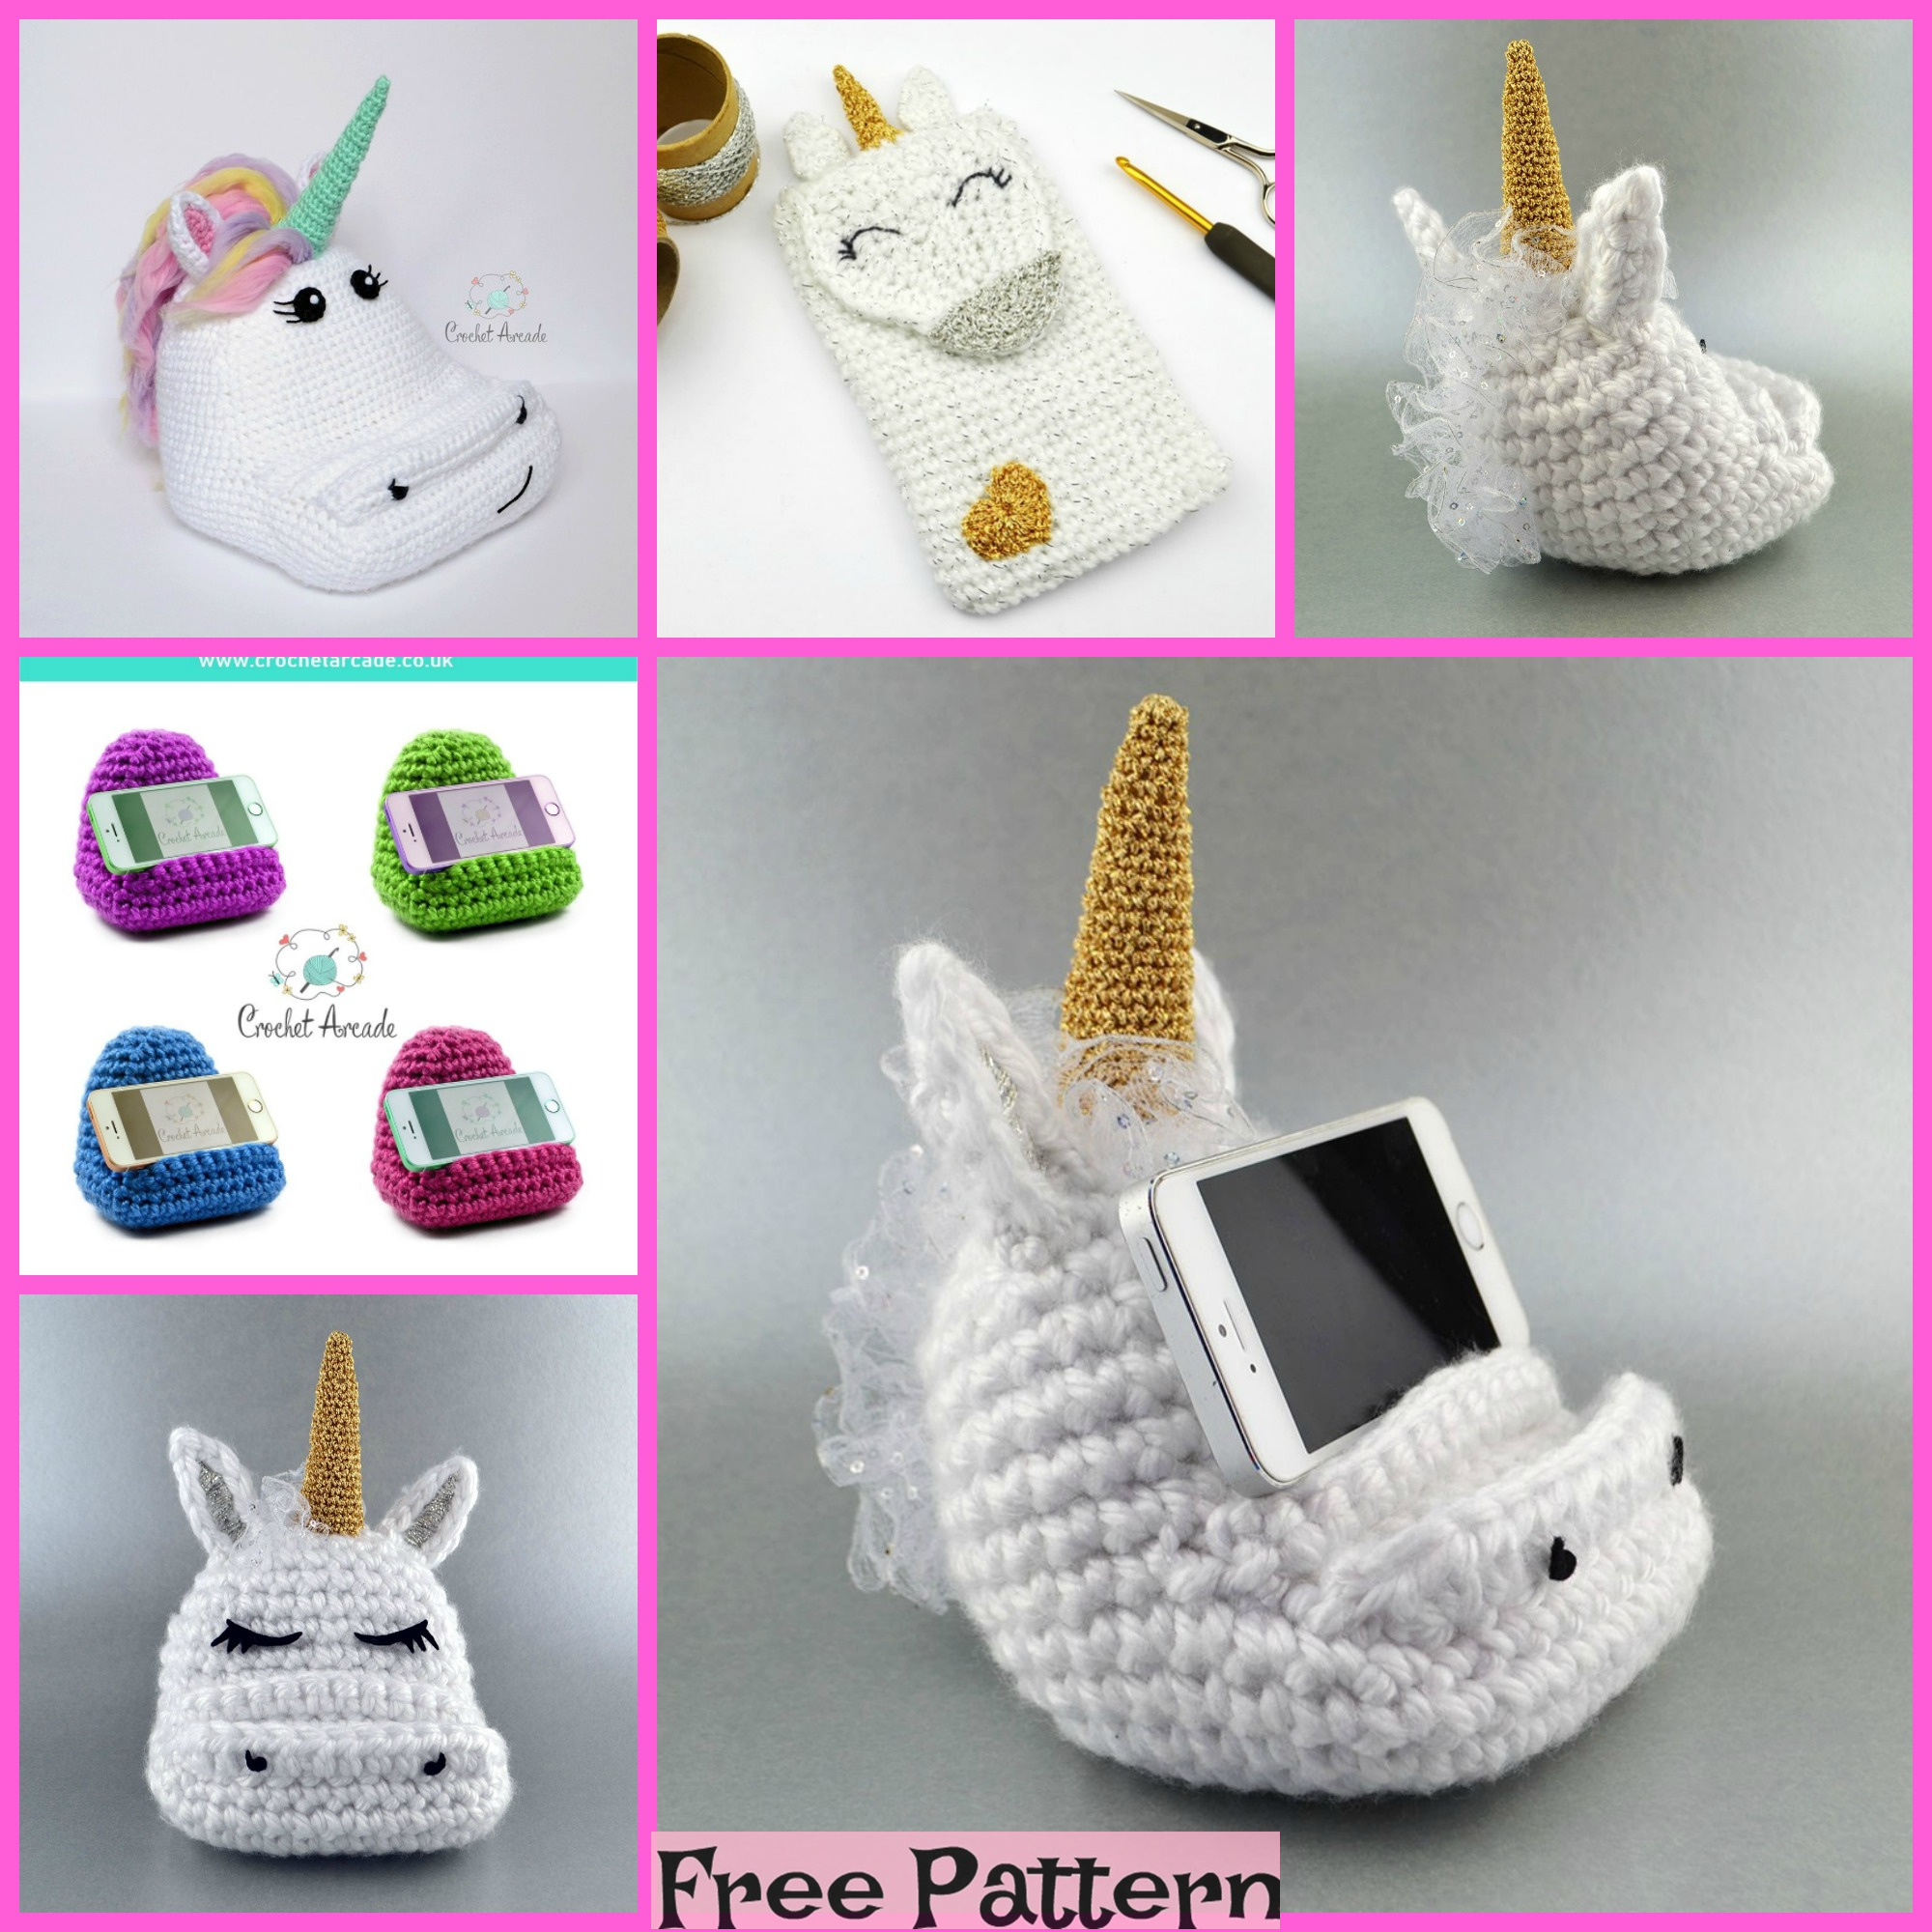 diy4ever-Crochet Cell Phone Holder - Free Pattern